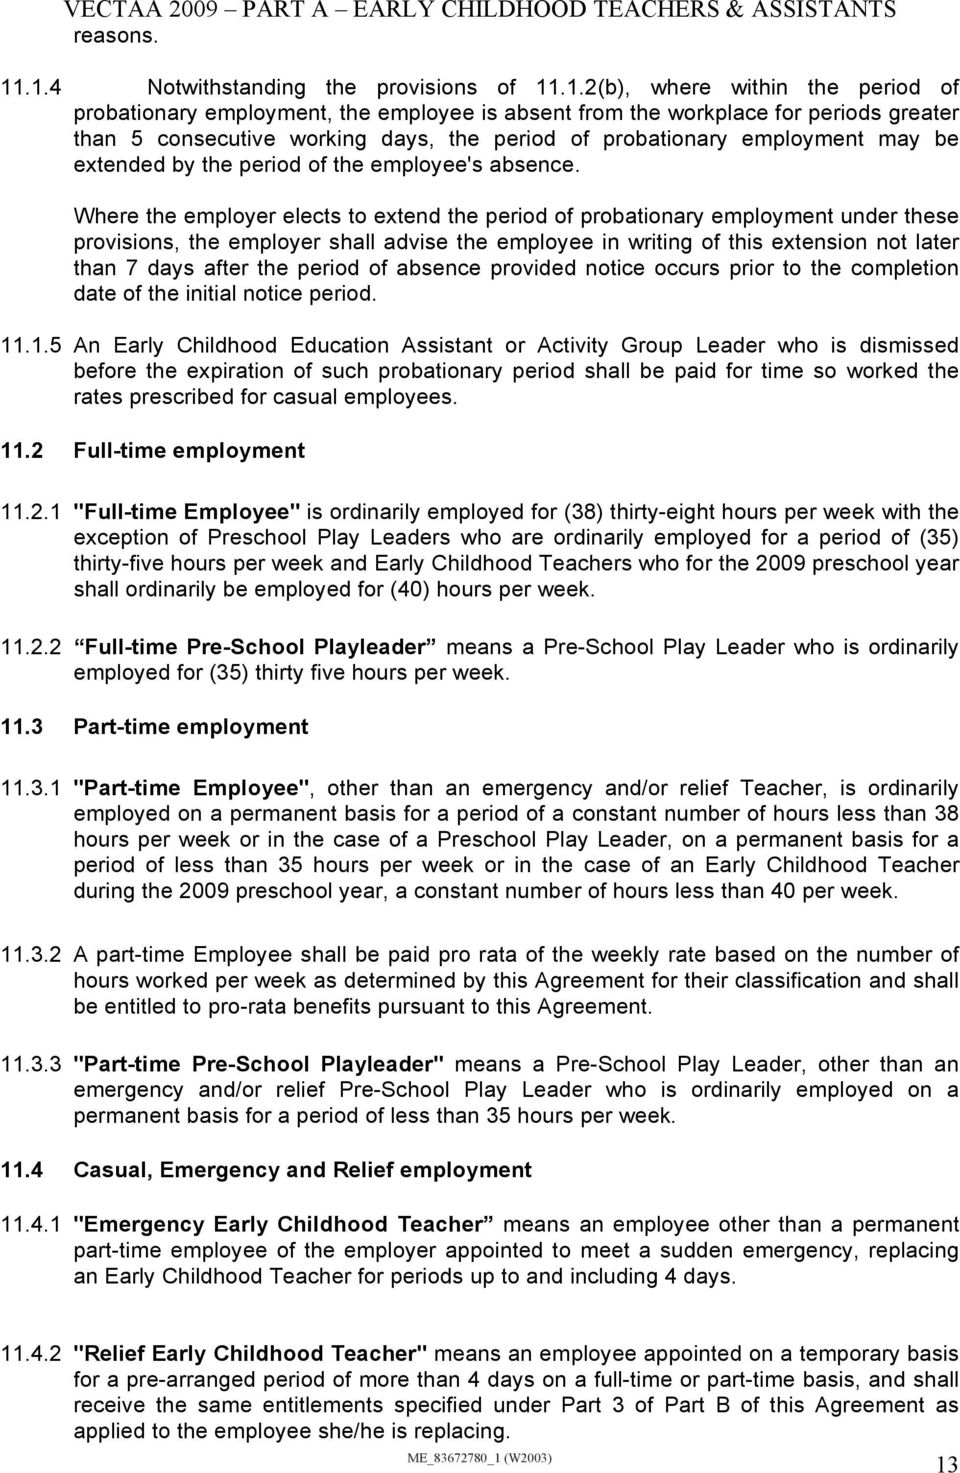 VECTAA 2009 PART A EARLY CHILDHOOD TEACHERS ASSISTANTS VICTORIAN – Casual Employment Agreement